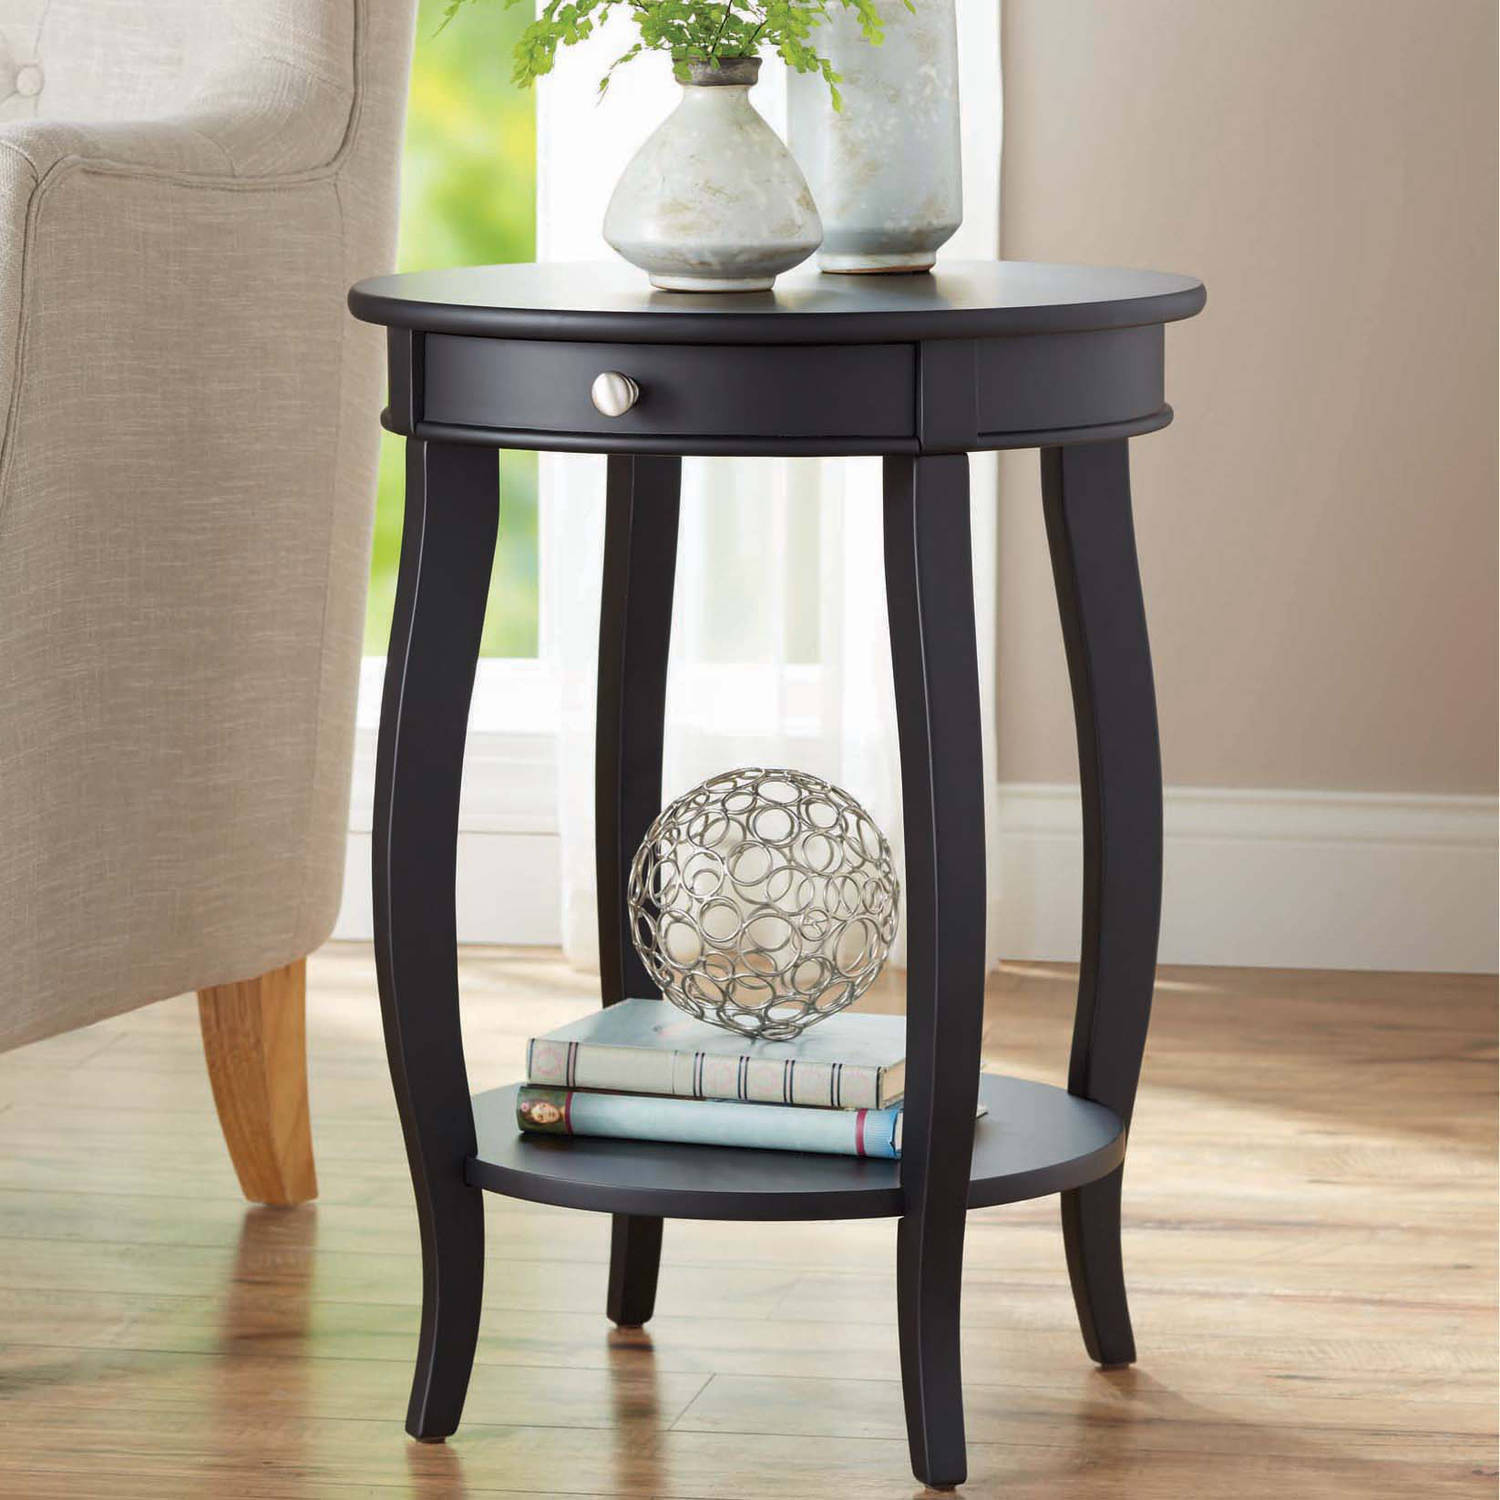 better homes gardens round accent table with drawer multiple small shelves colors living room furniture end tables leg extenders medium oak console outdoor fireplace tempo ocean